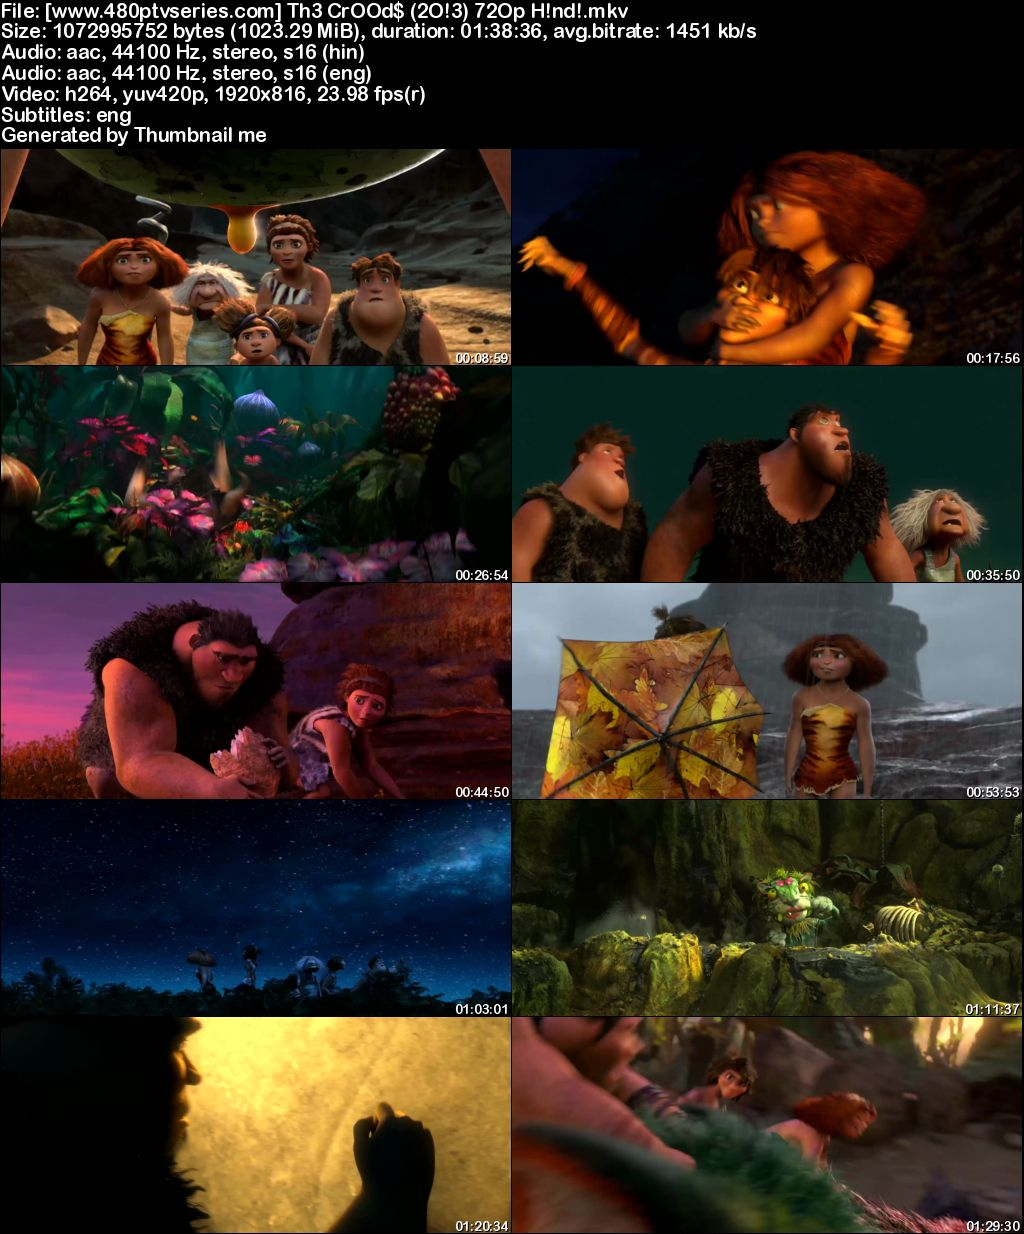 The Croods (2013) Full Hindi Dual Audio Movie Download